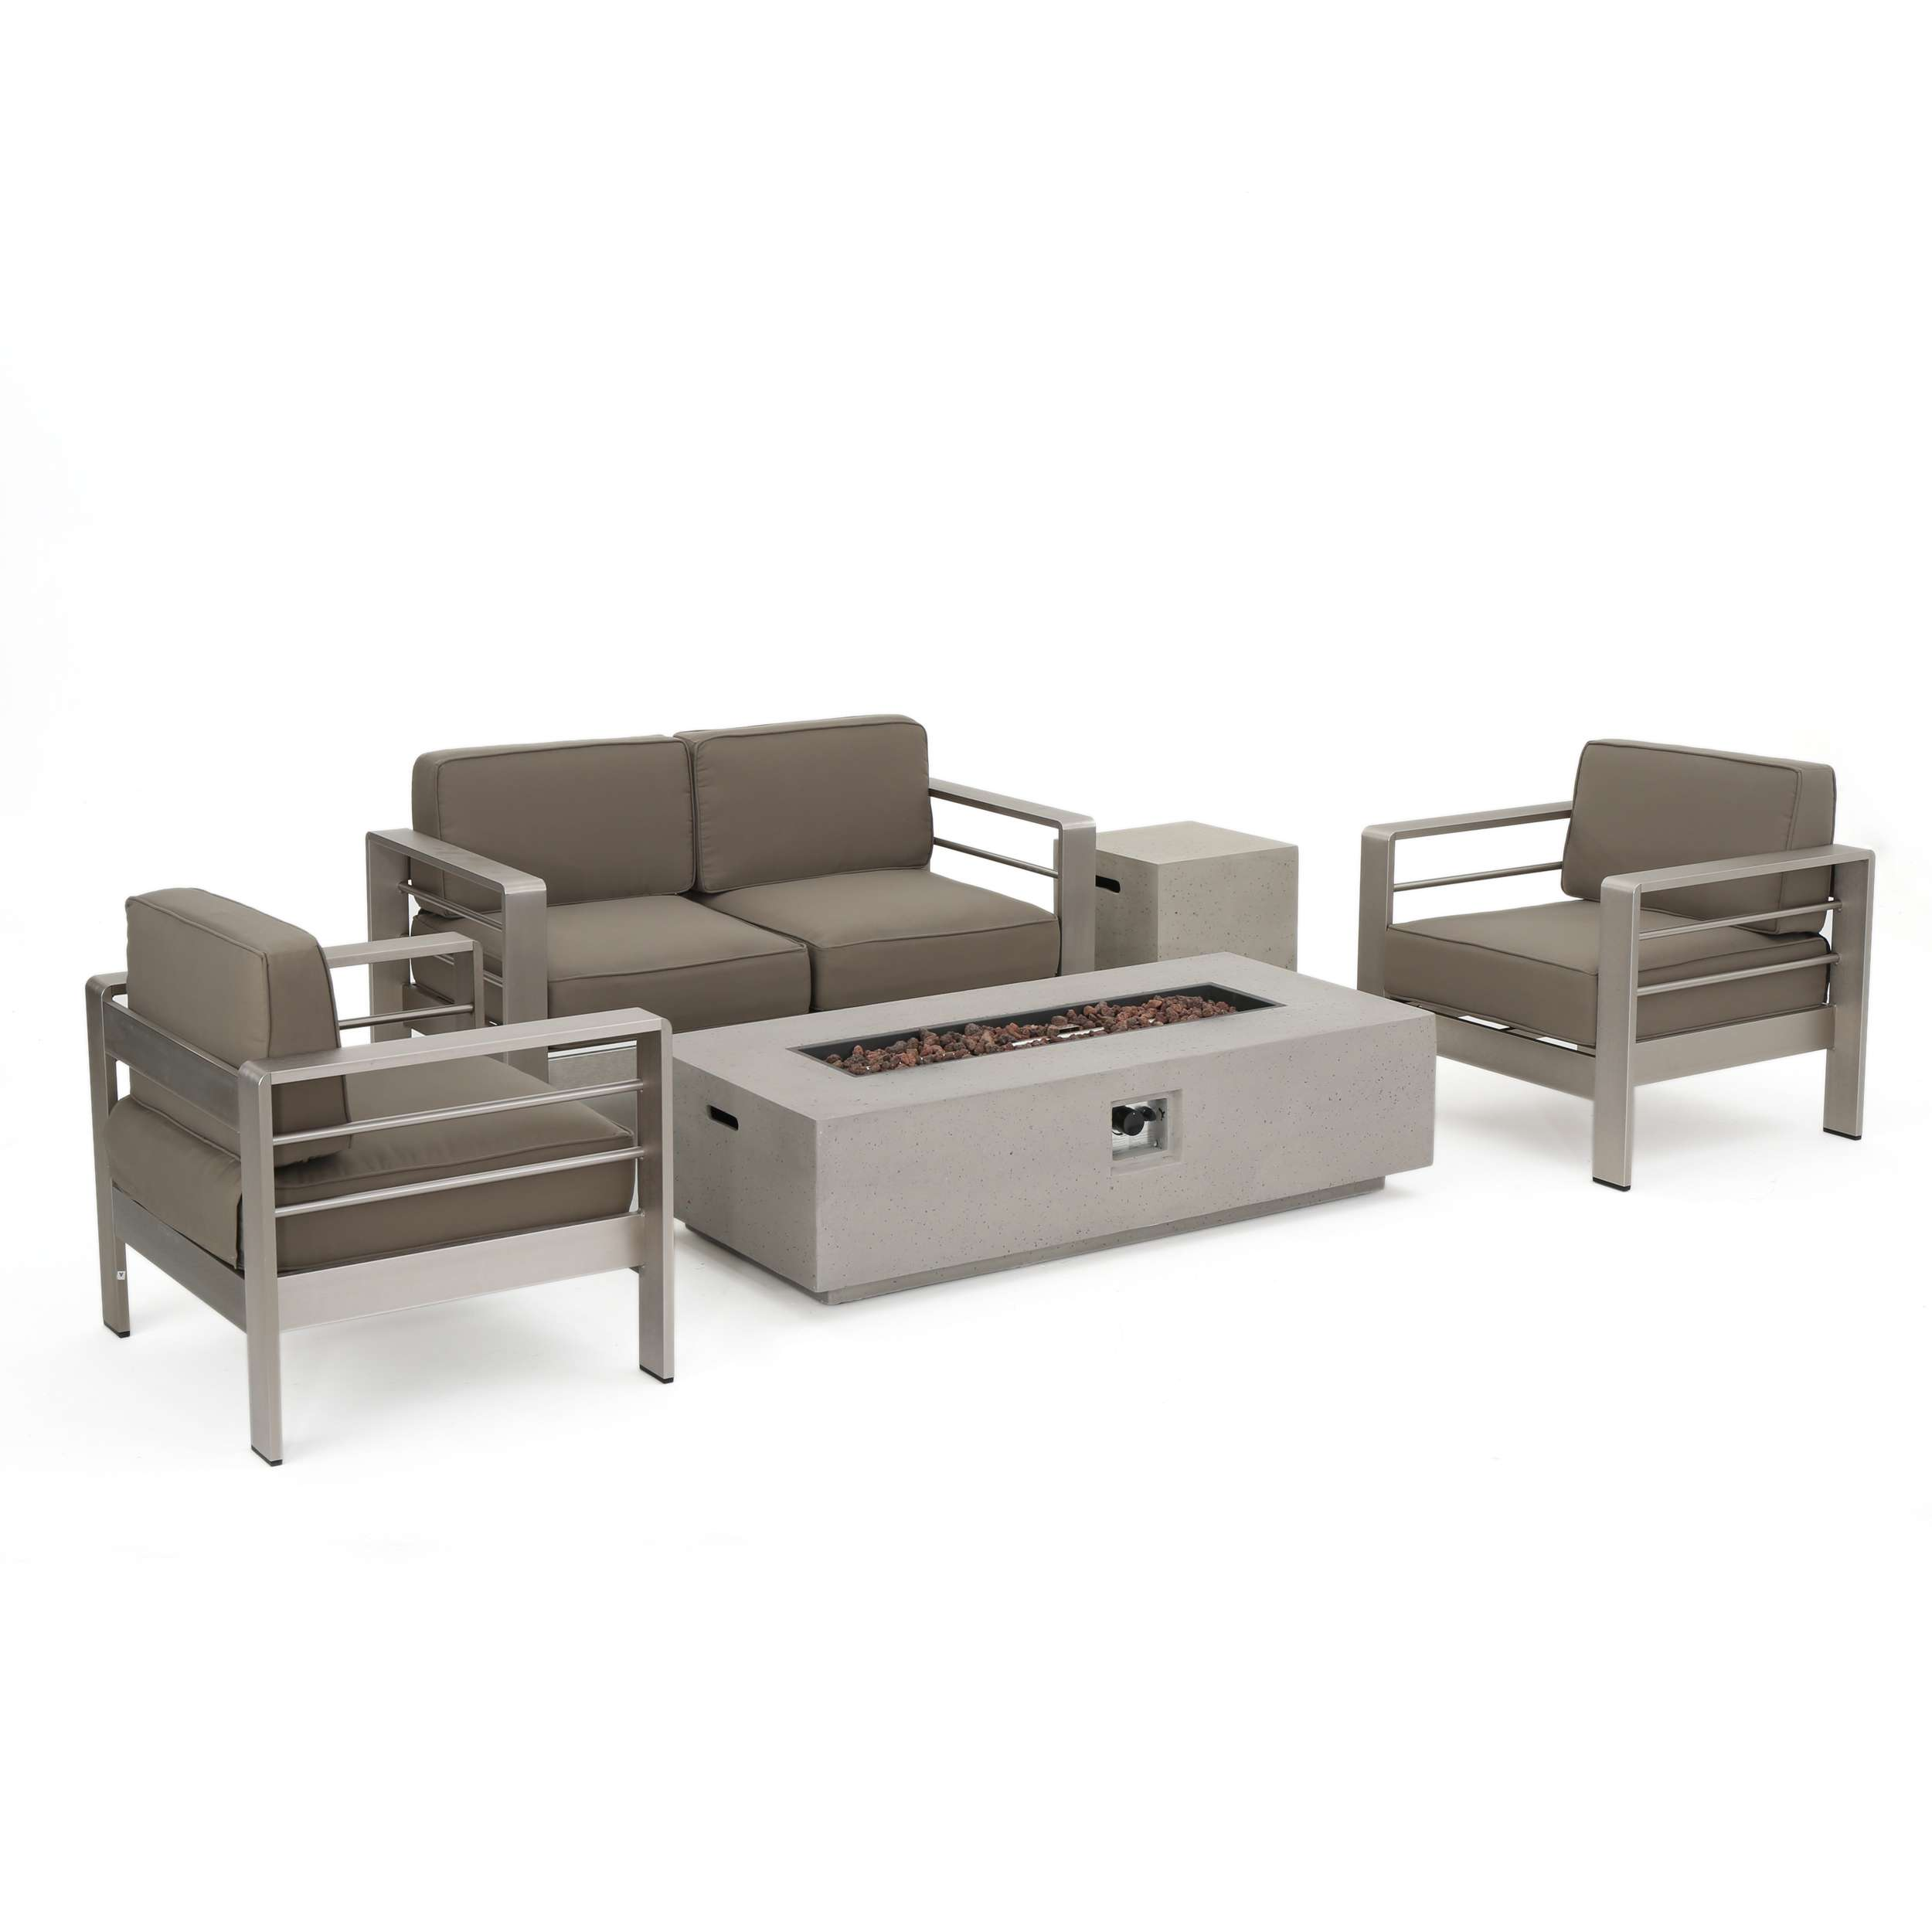 GDF Studio Coral Bay Outdoor 5-Piece Chat Set with Fire Table